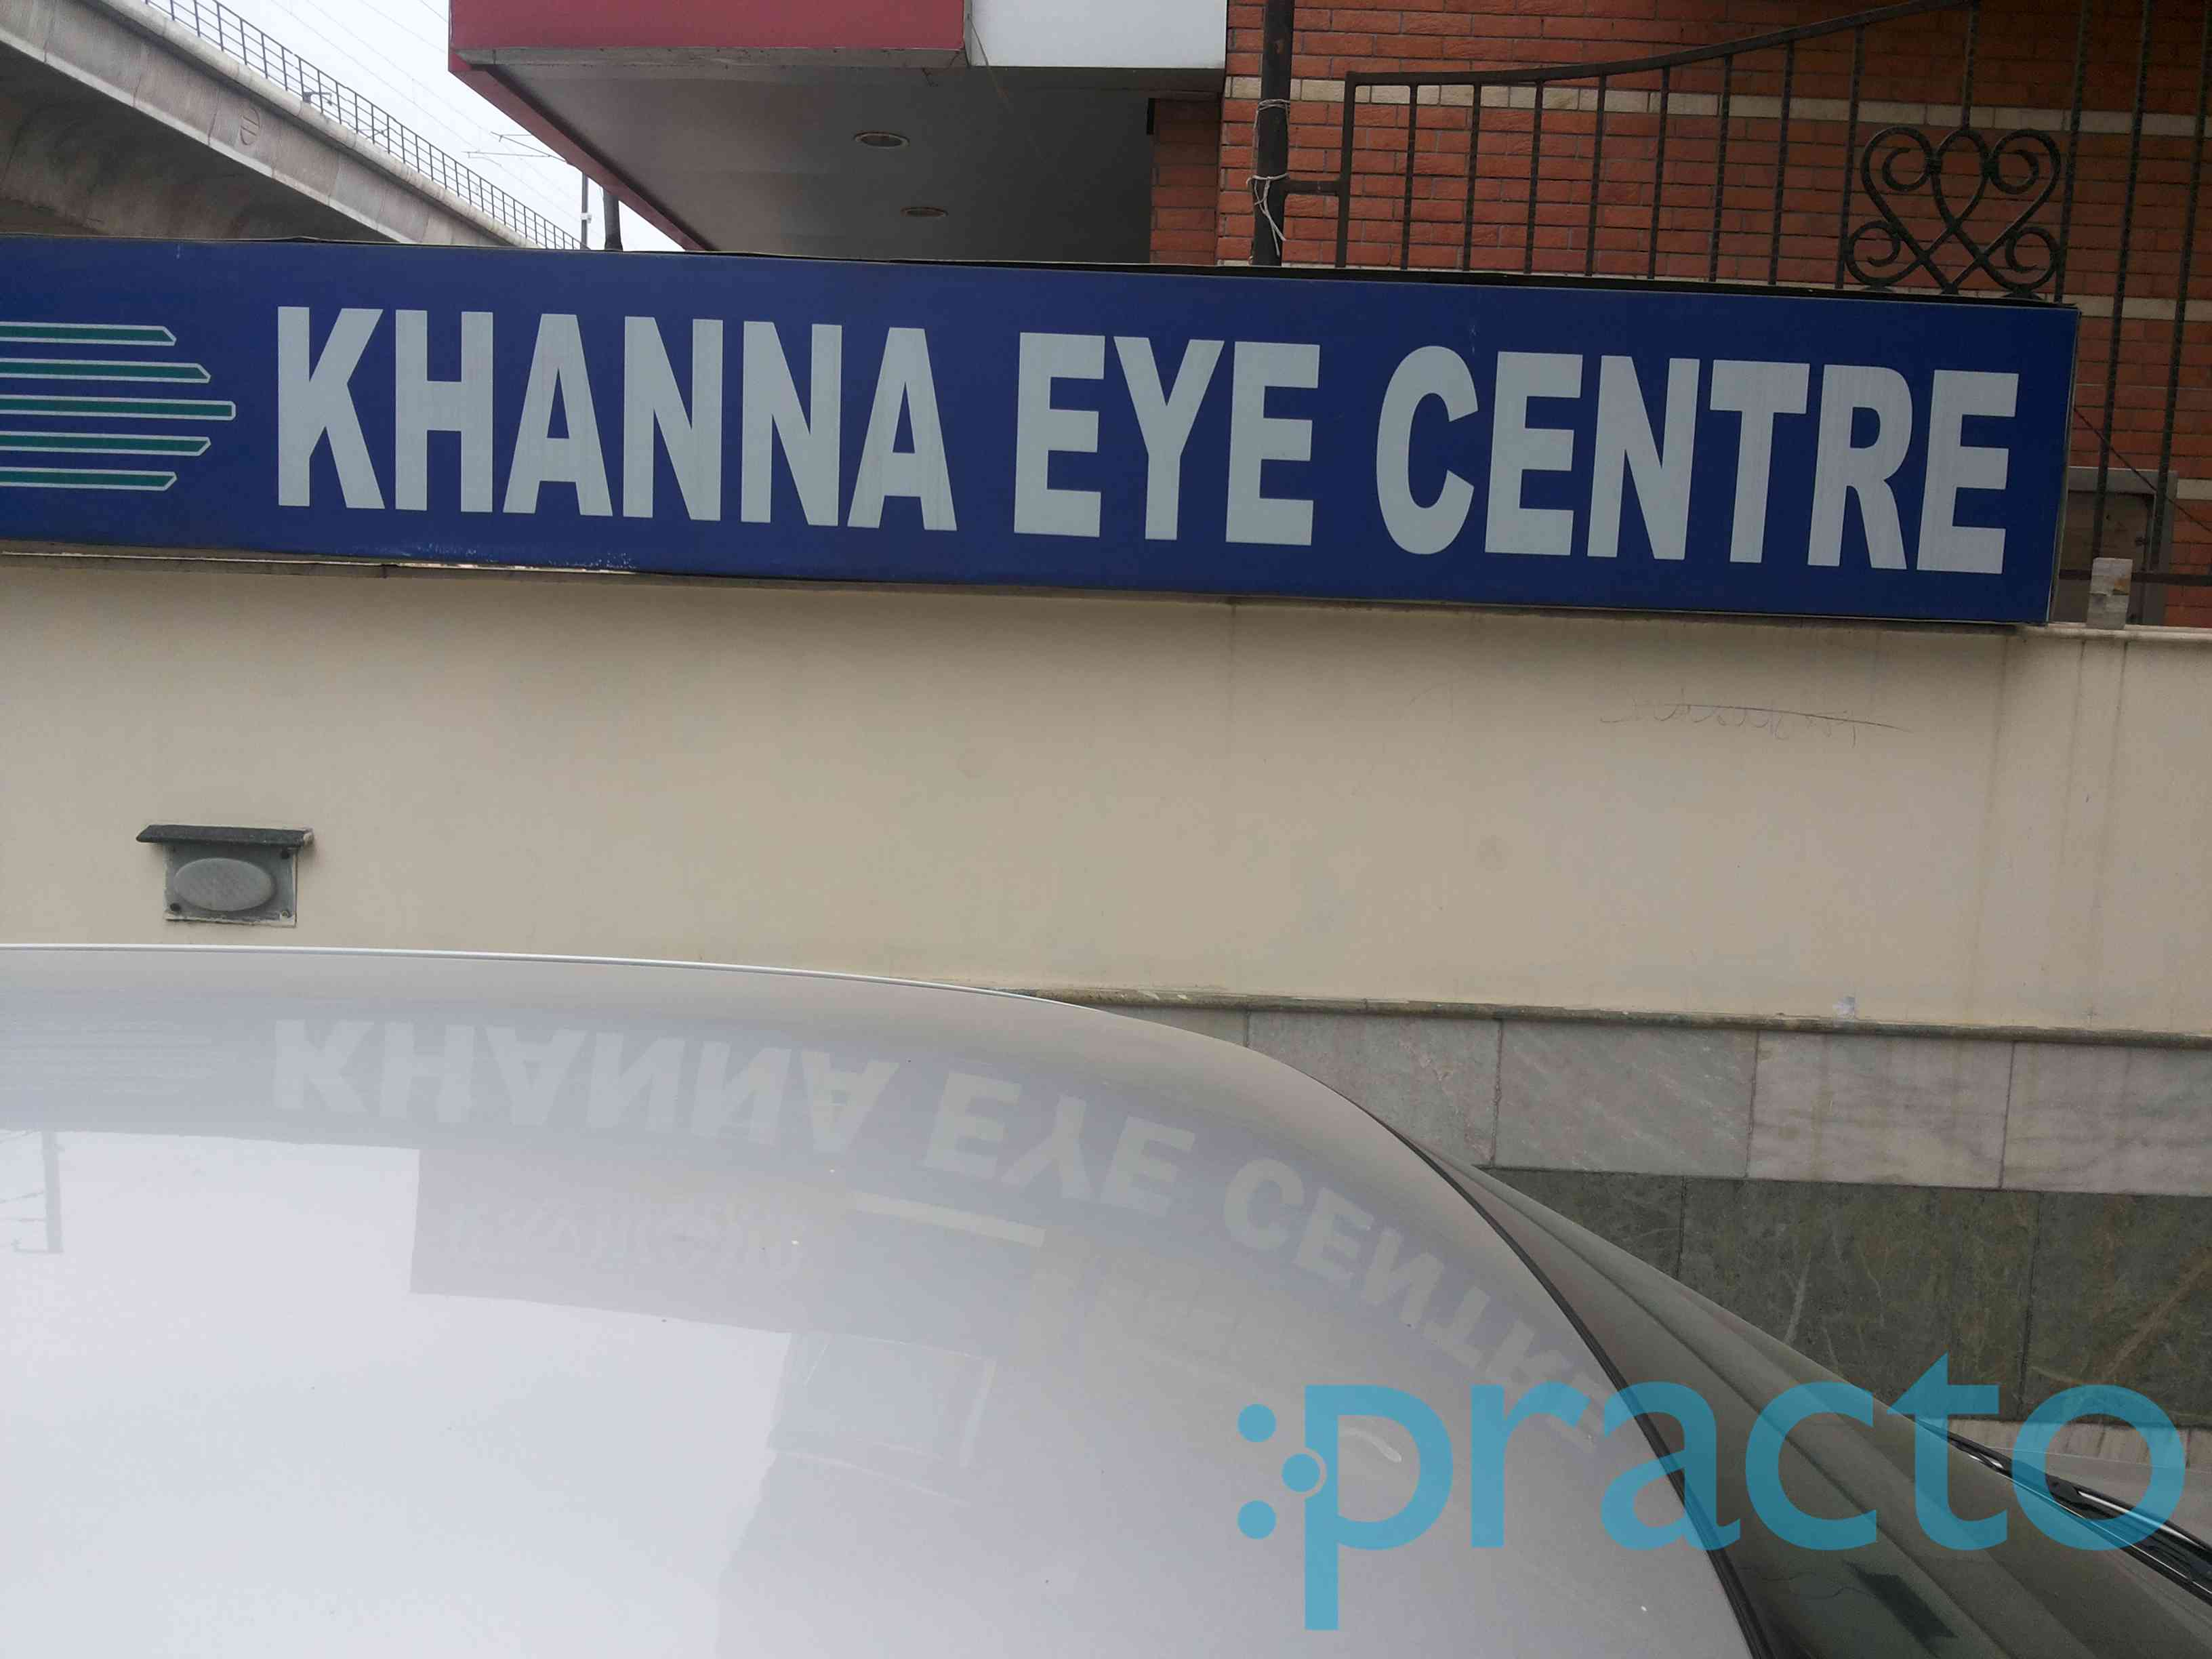 5e2a5aad210a84 Khanna Eye centre, Eye Clinic in Nirman Vihar, Delhi - Book Appointment,  View Fees, Feedbacks   Practo